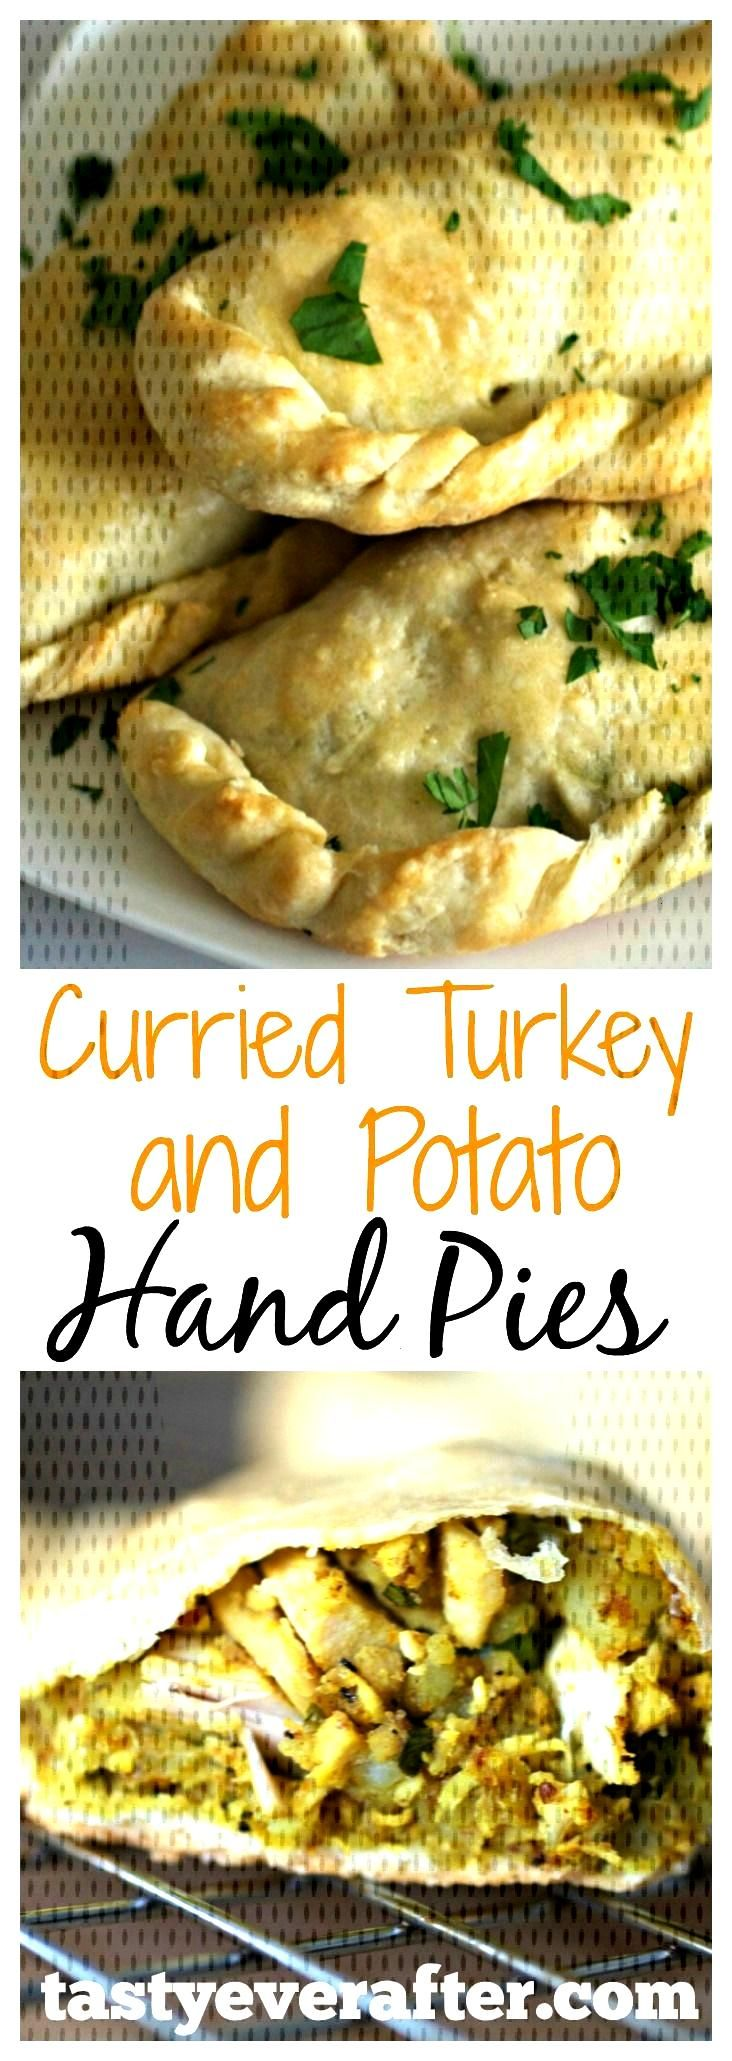 Easy Curried Turkey Hand Pies With Potatoes - Tasty Ever After - This is such a great way to use u